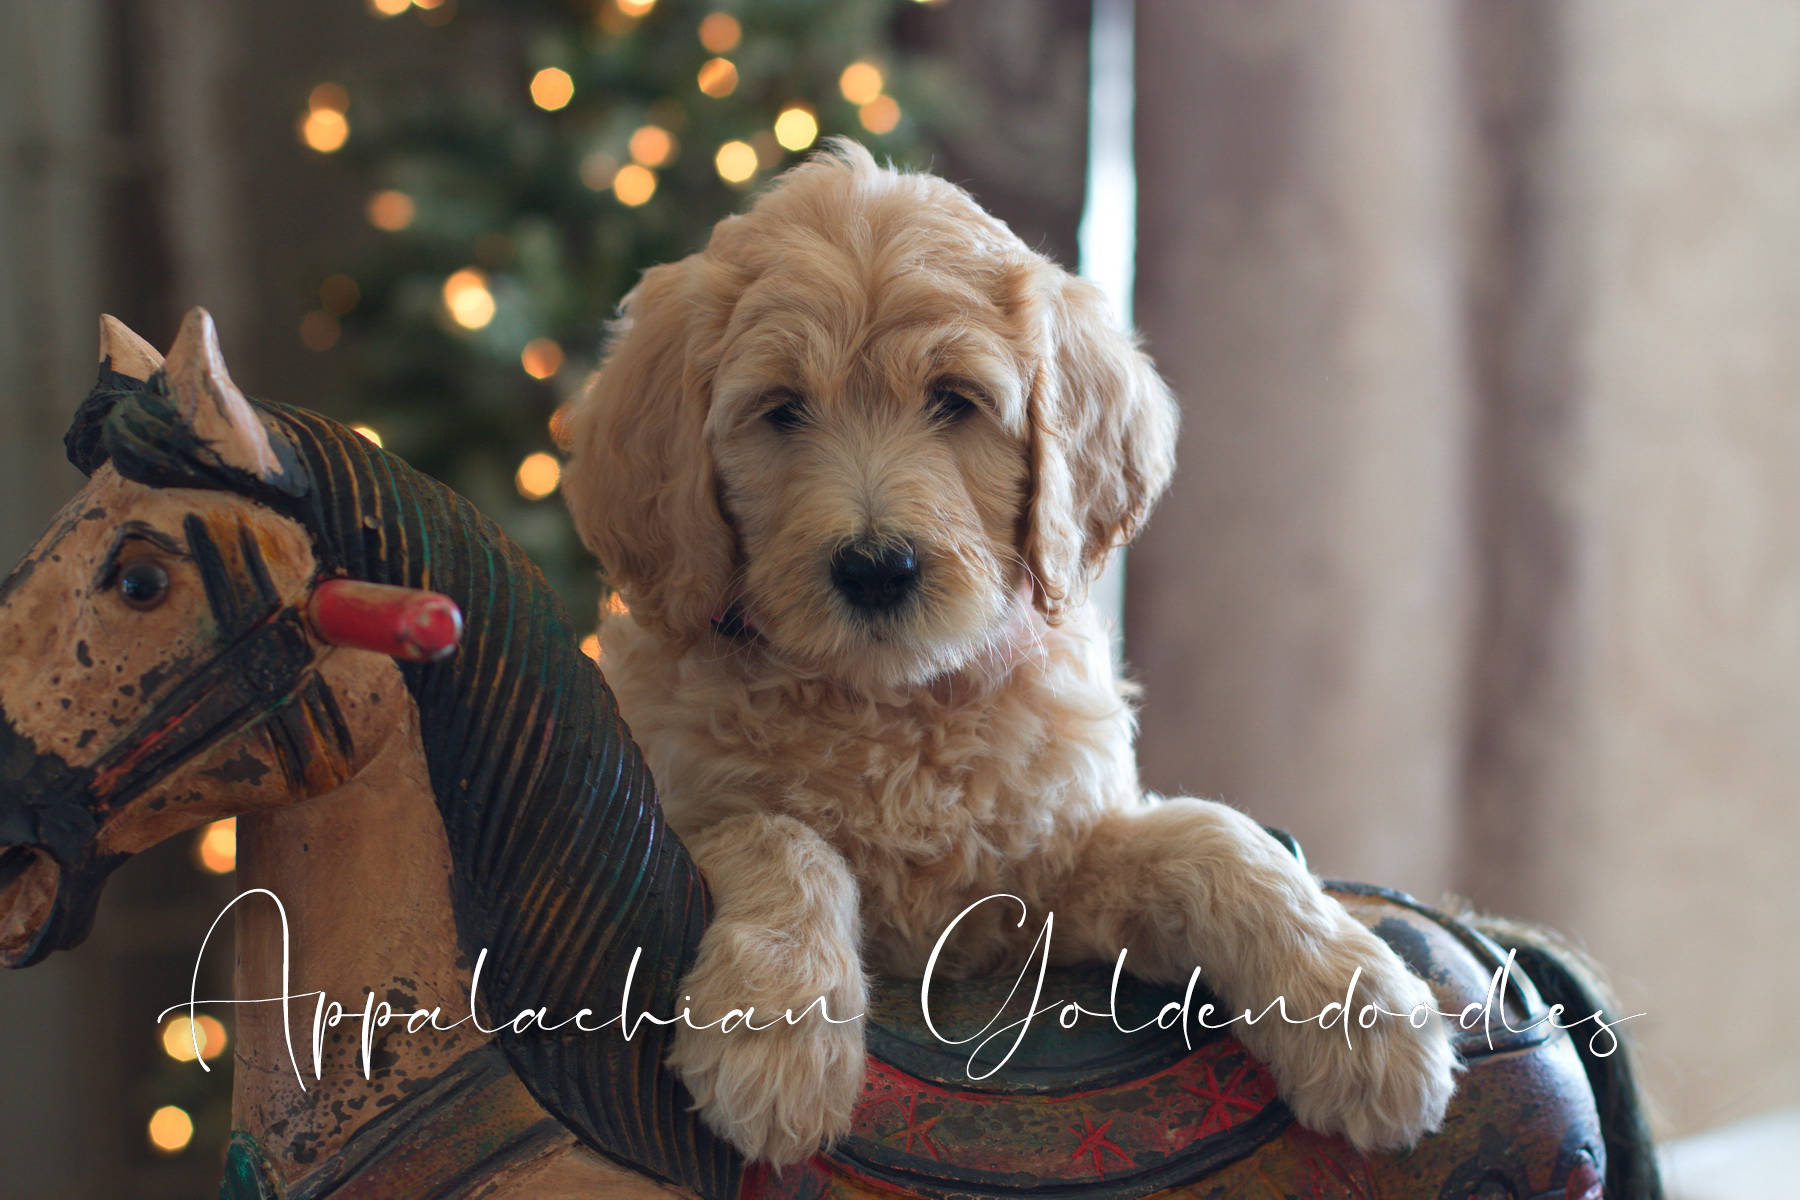 F1 F1b English Teddybear Goldendoodle Bernedoodles